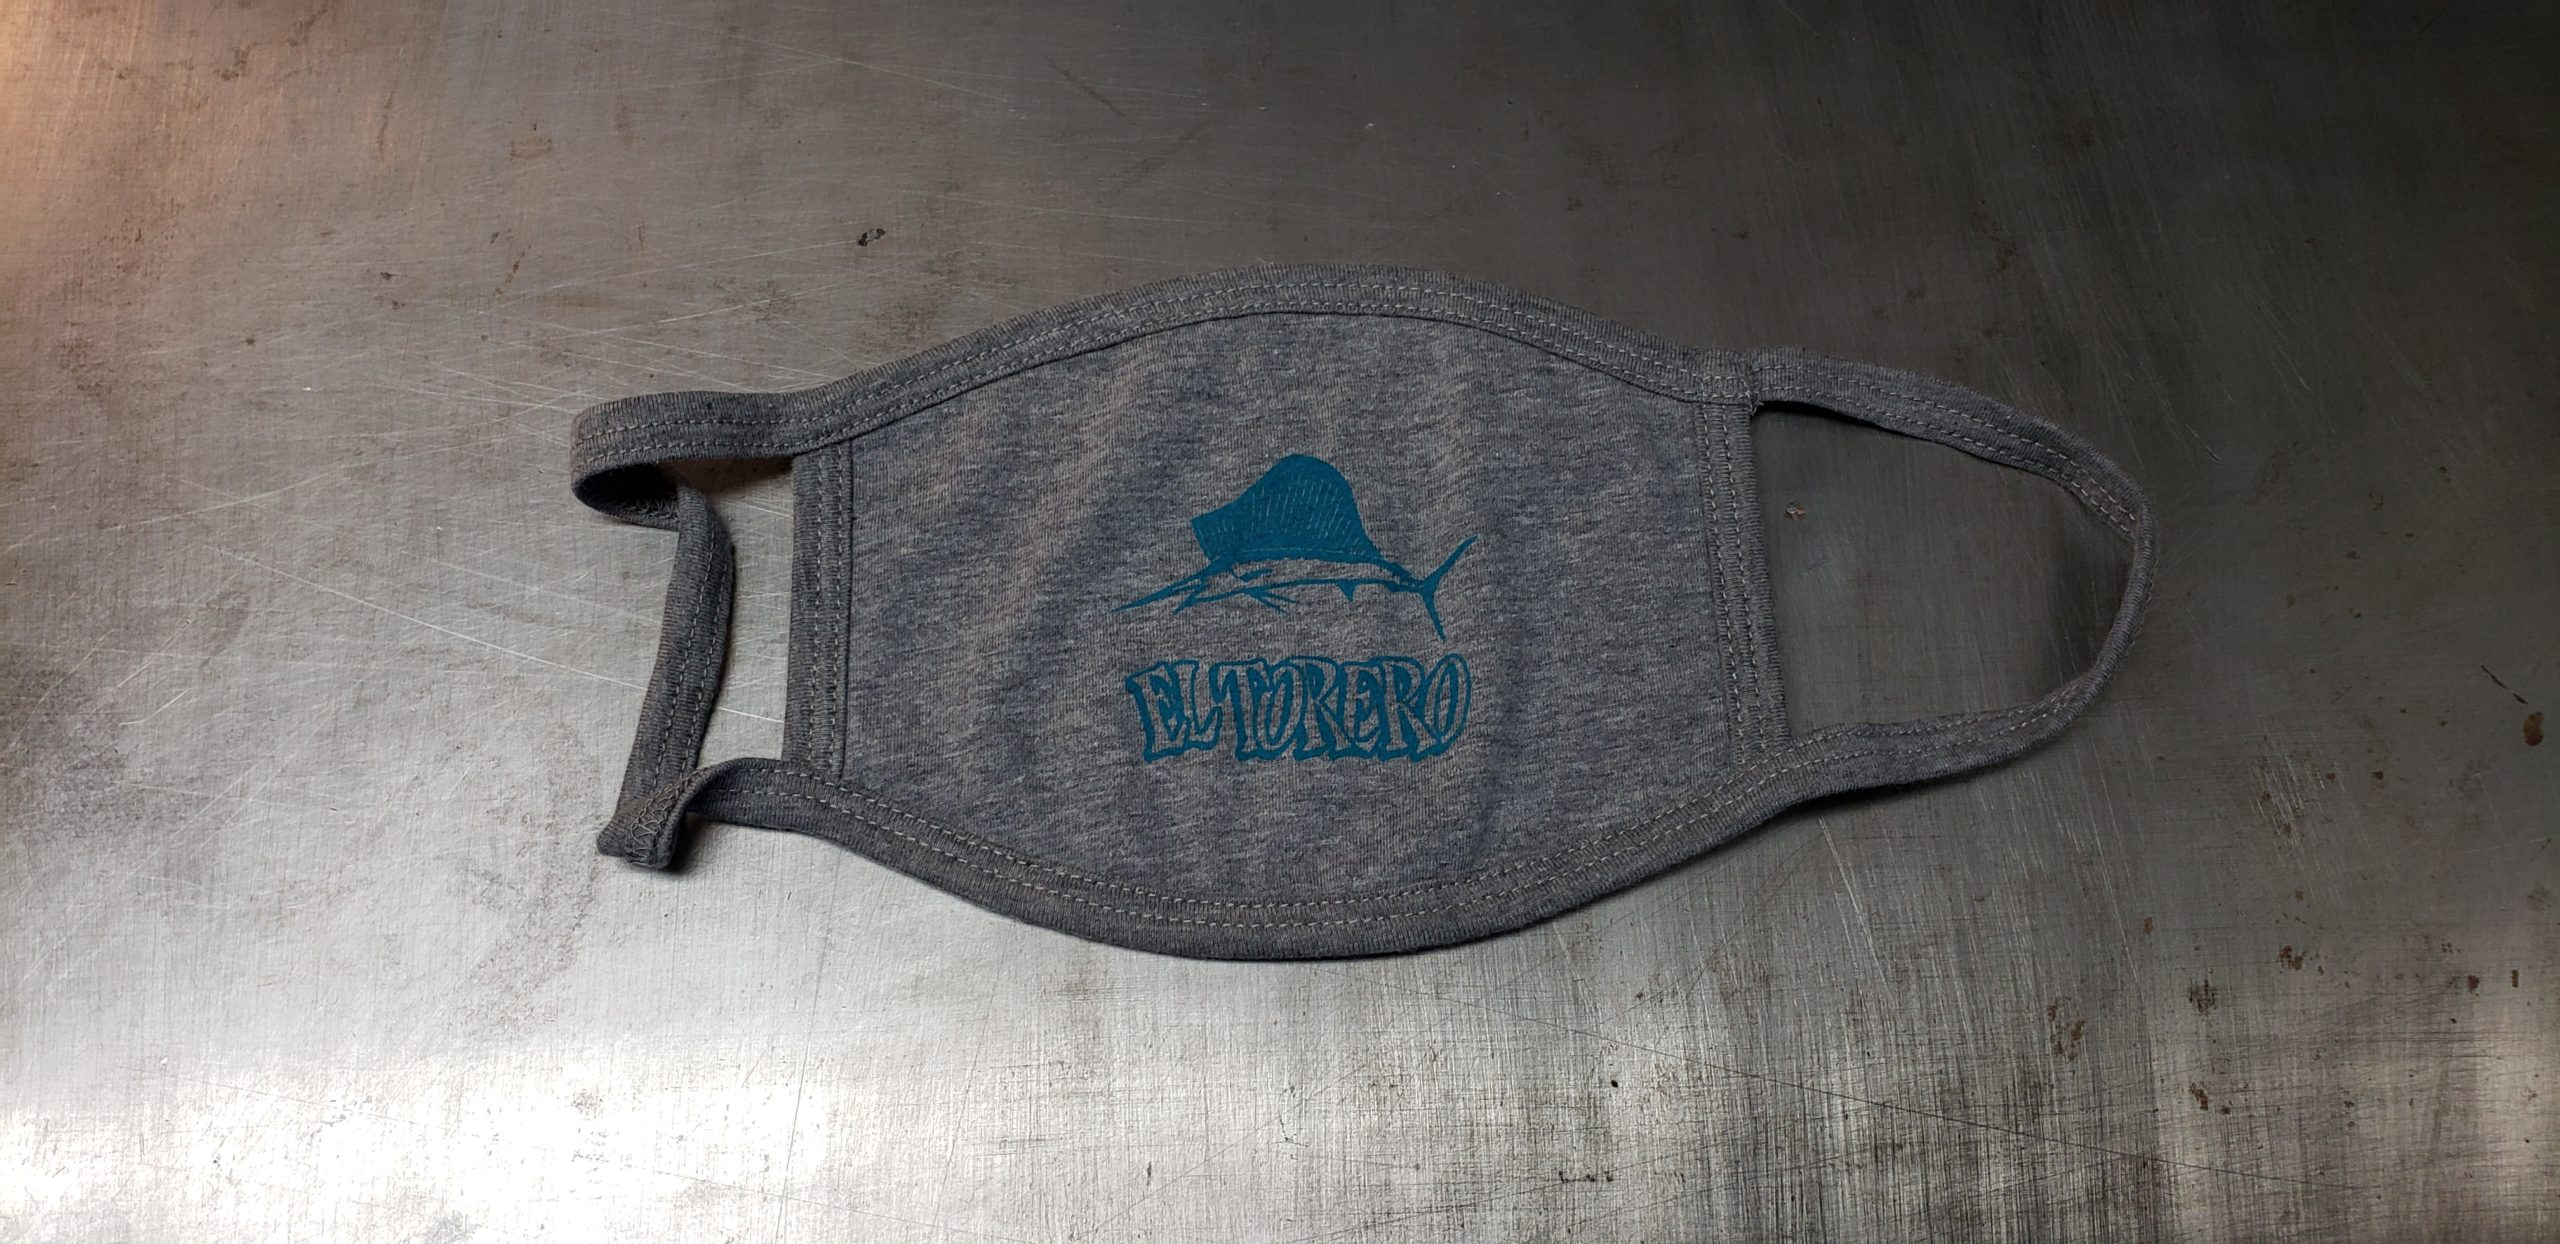 Heather grey cotton face mask with union screen printed one color design for EL TORERO restaurant with a swordfish above the restaurant name